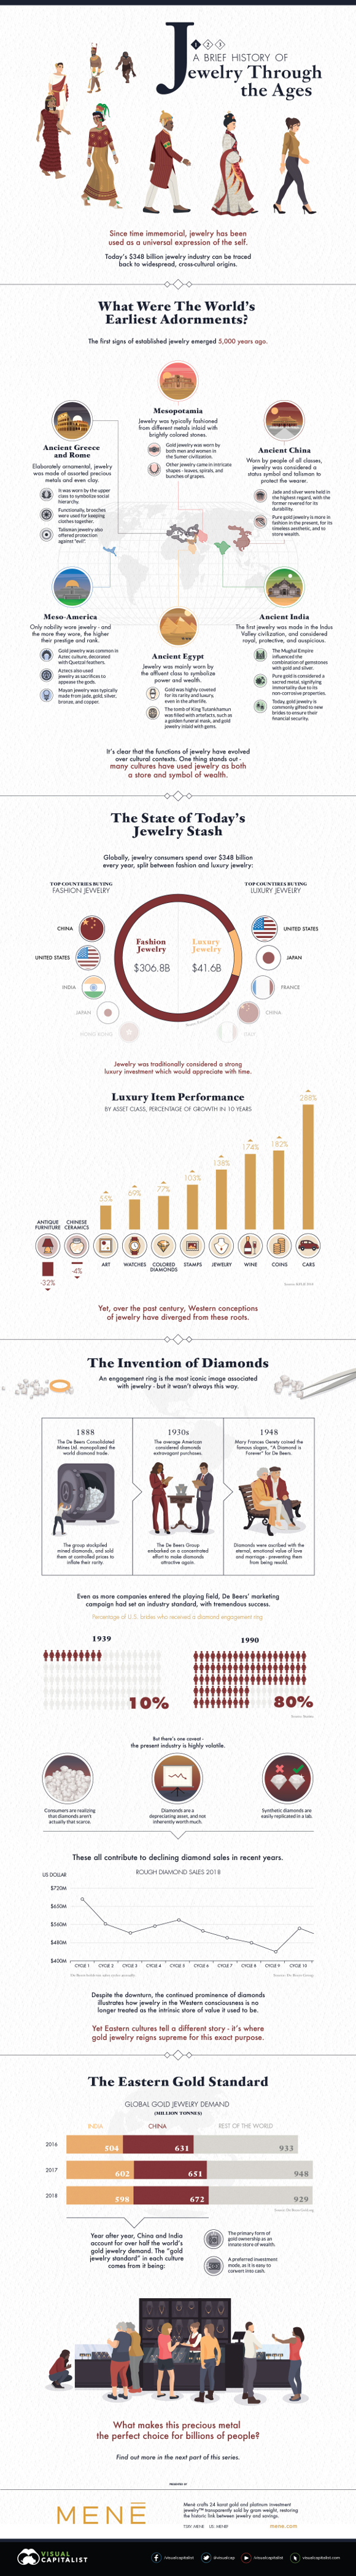 Visual Capitalist: A brief history of jewelry through the ages